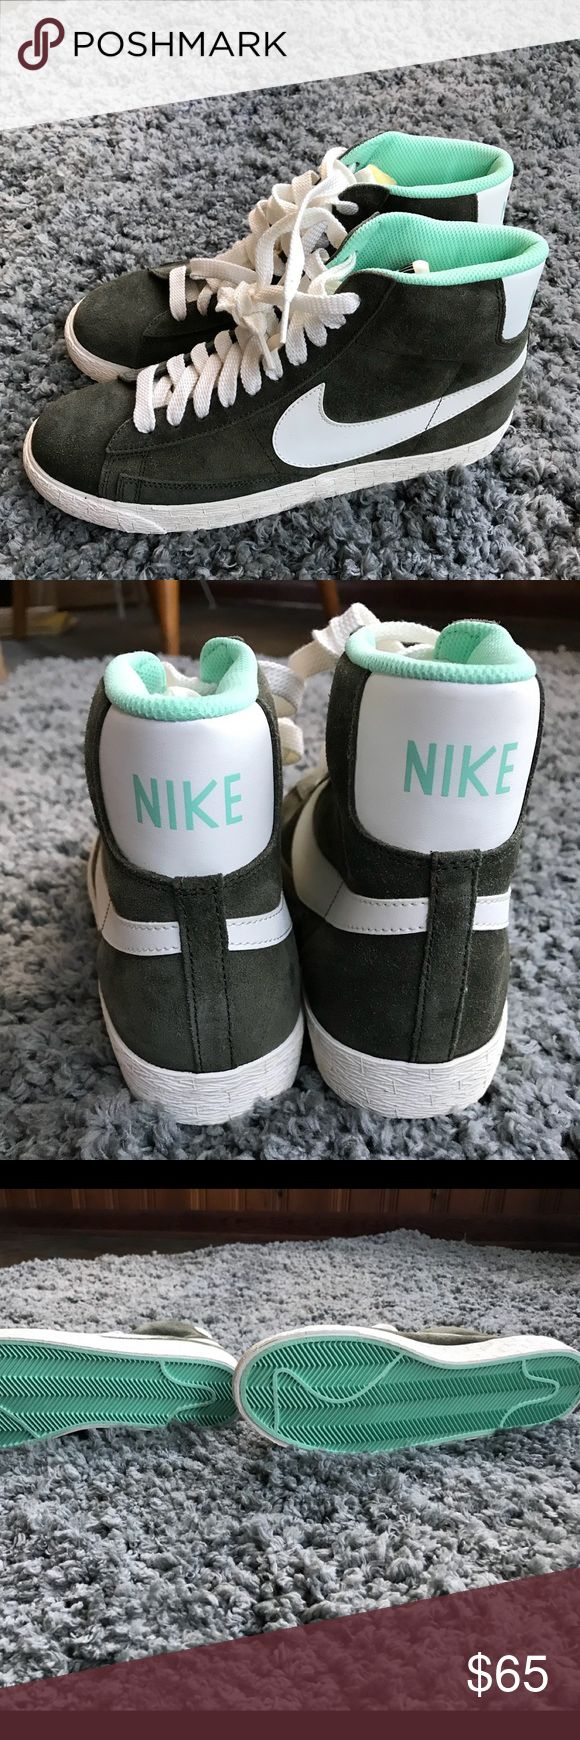 Nike Hi Tops (W) Nike Hi Tops for all the Girlfriends our there. These were never worn! Olive green with a white swoosh and aqua lining. Funky fresh. Won't last! Nike Shoes Sneakers